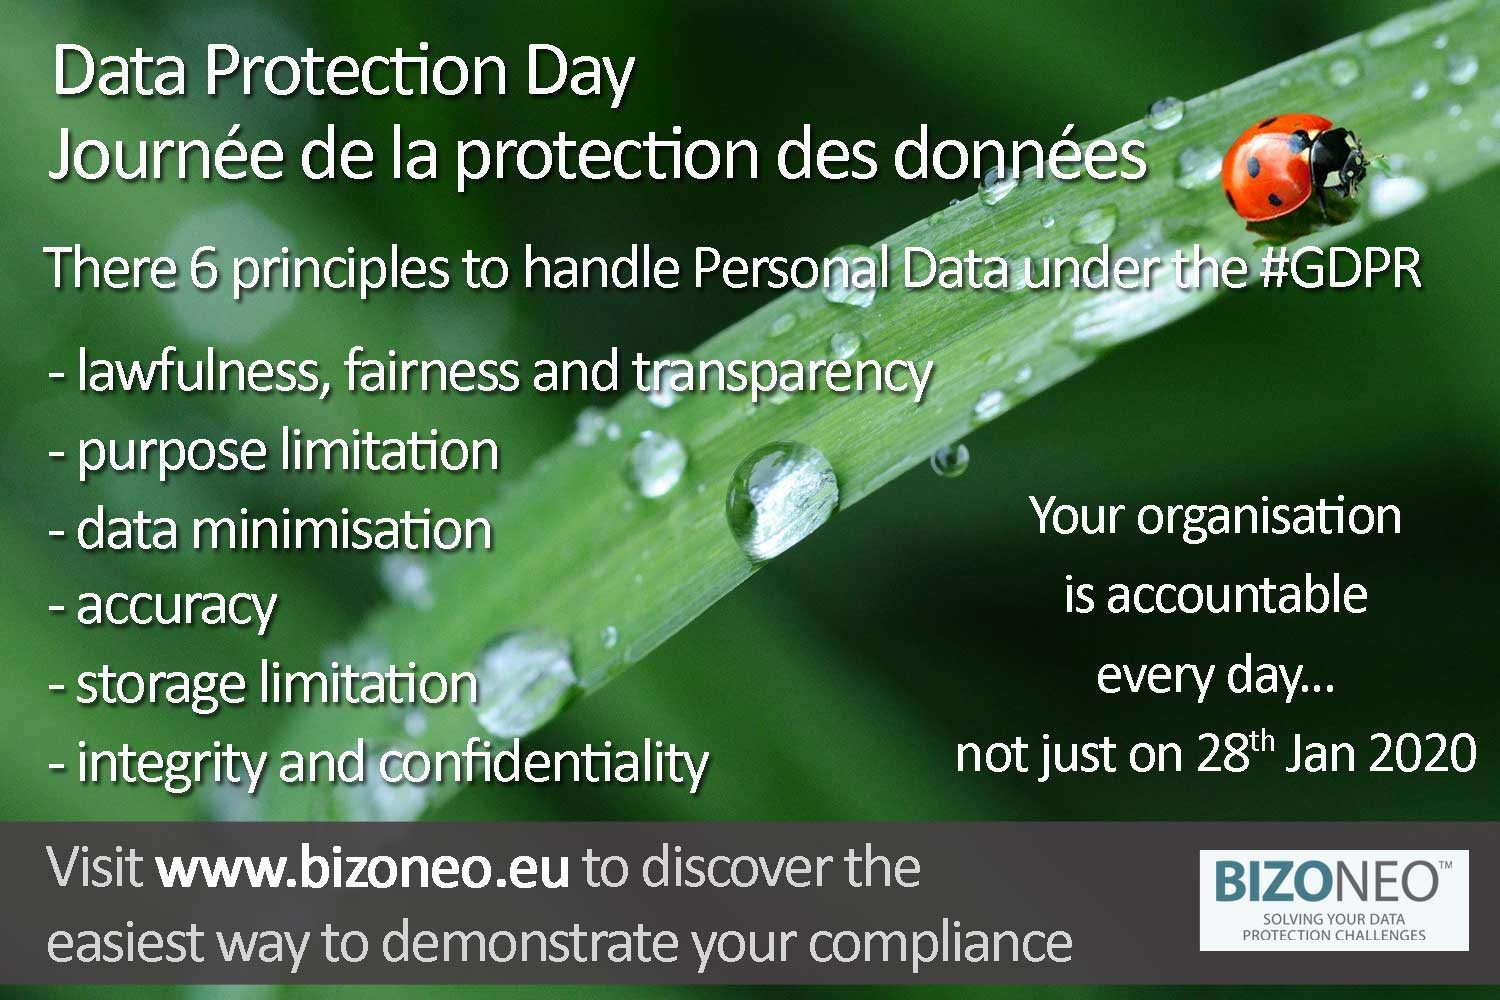 Data Protection Day